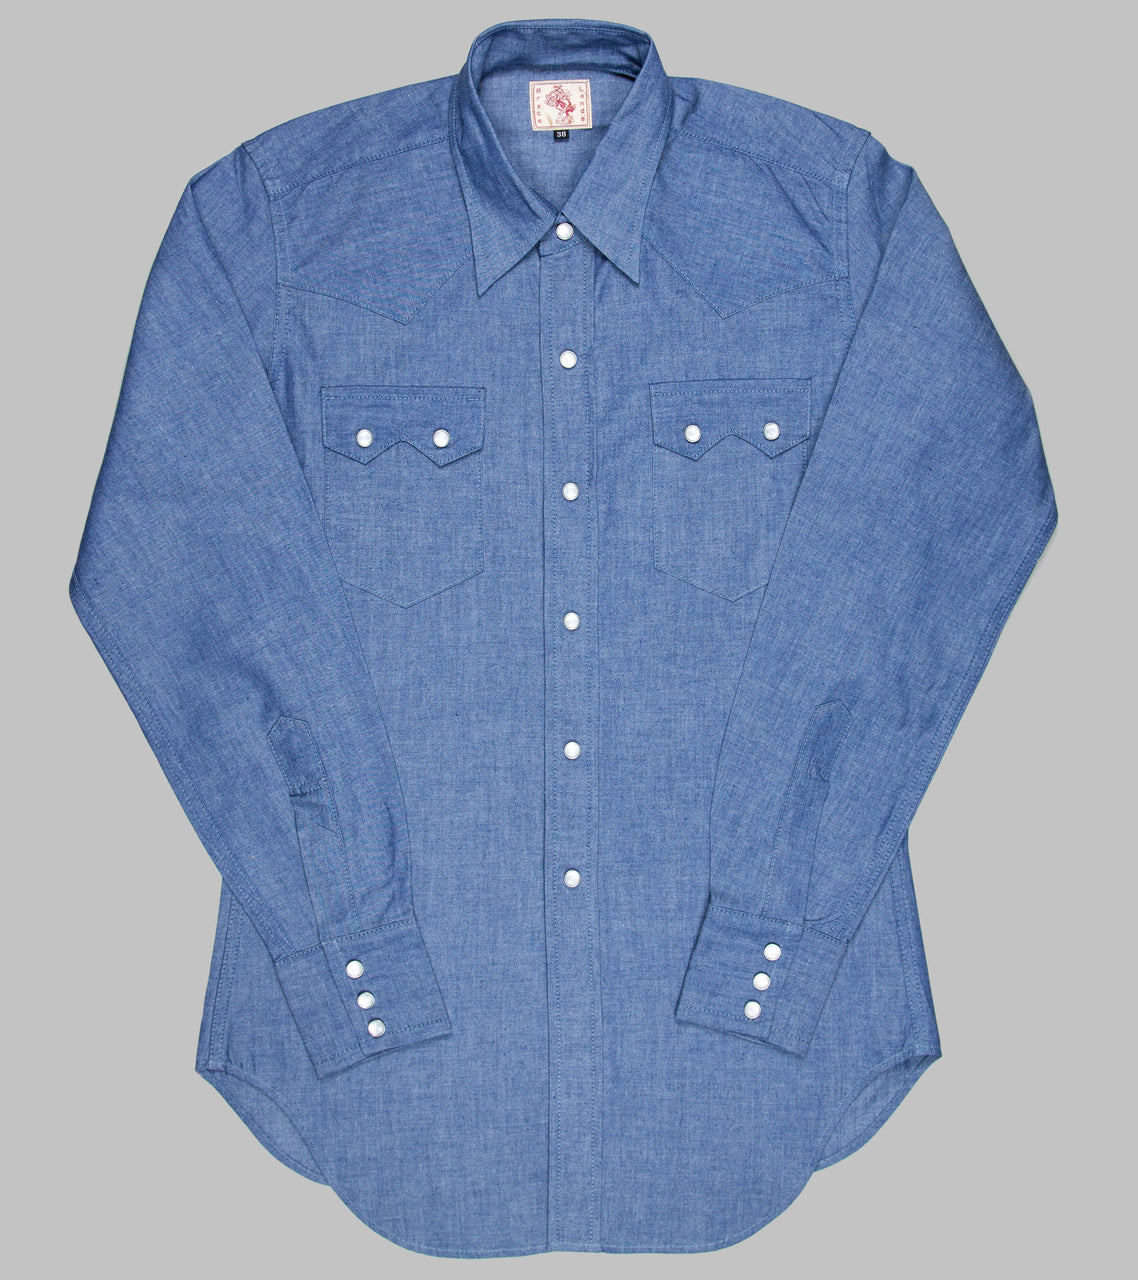 Bryceland's Sawtooth Westerner Chambray